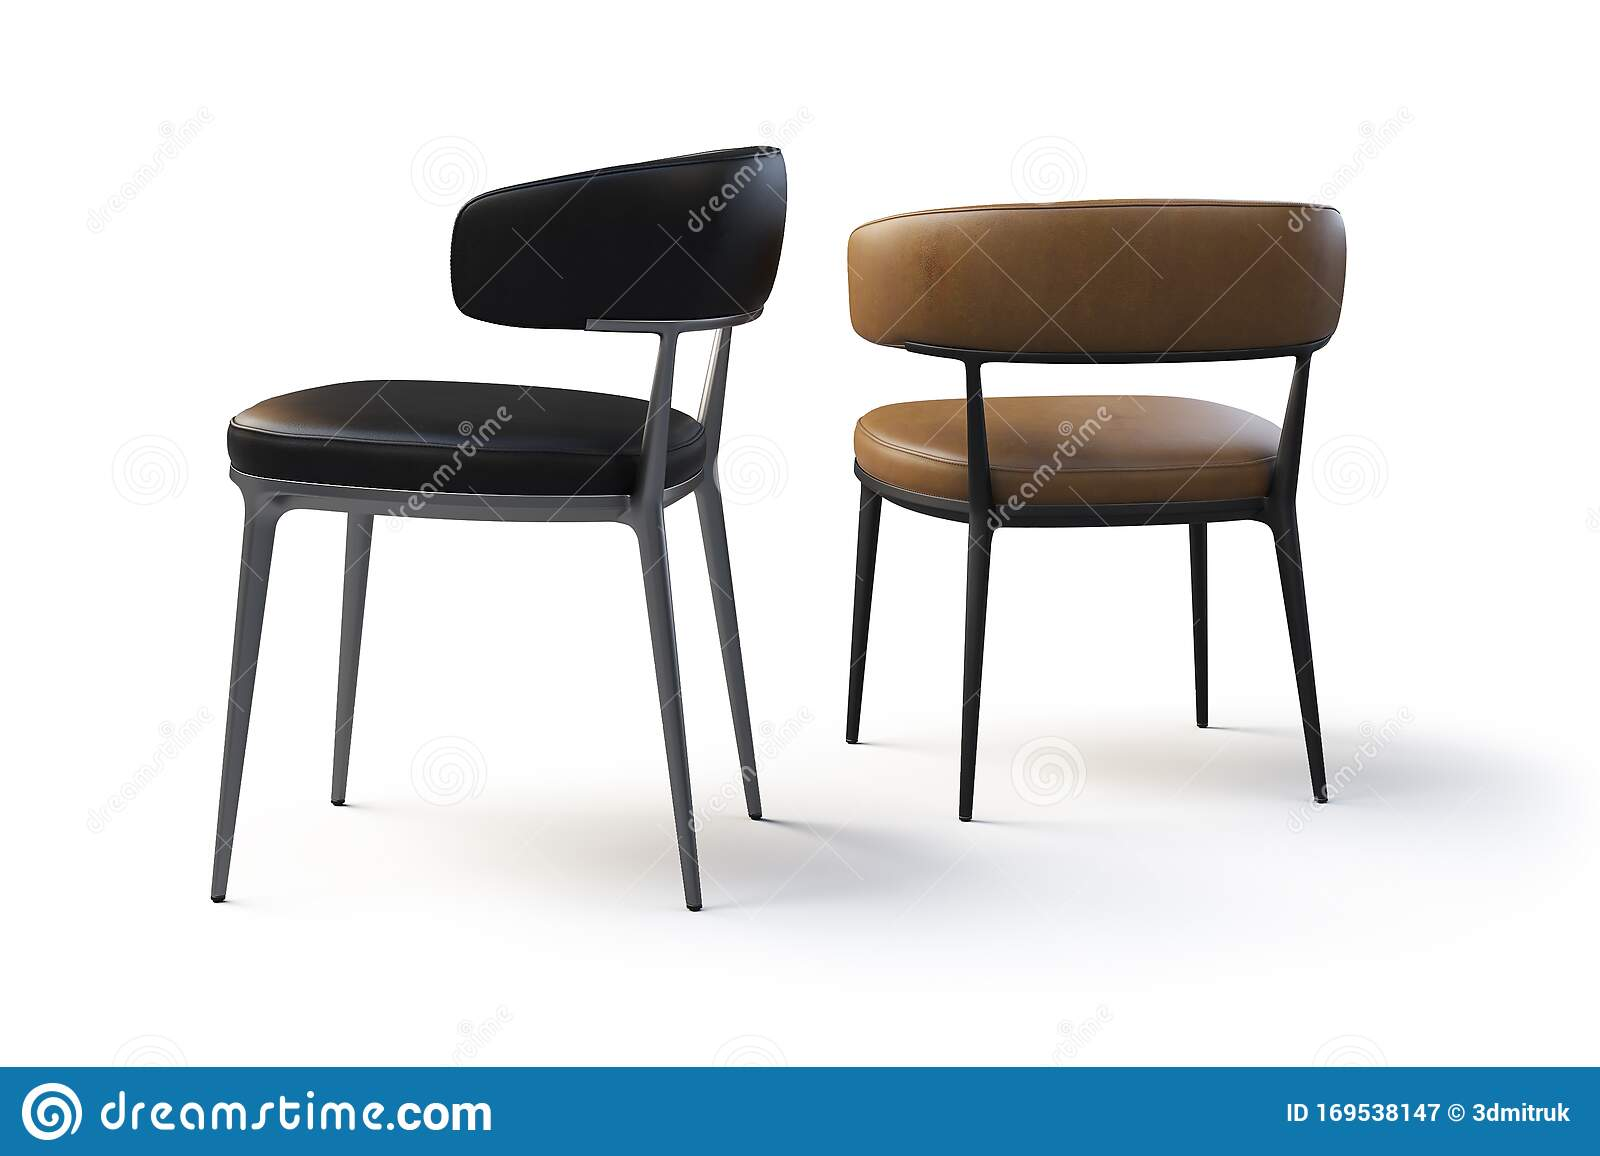 Picture of: Brown And Black Leather Chairs With Metal Legs 3d Render Stock Illustration Illustration Of Leather Design 169538147